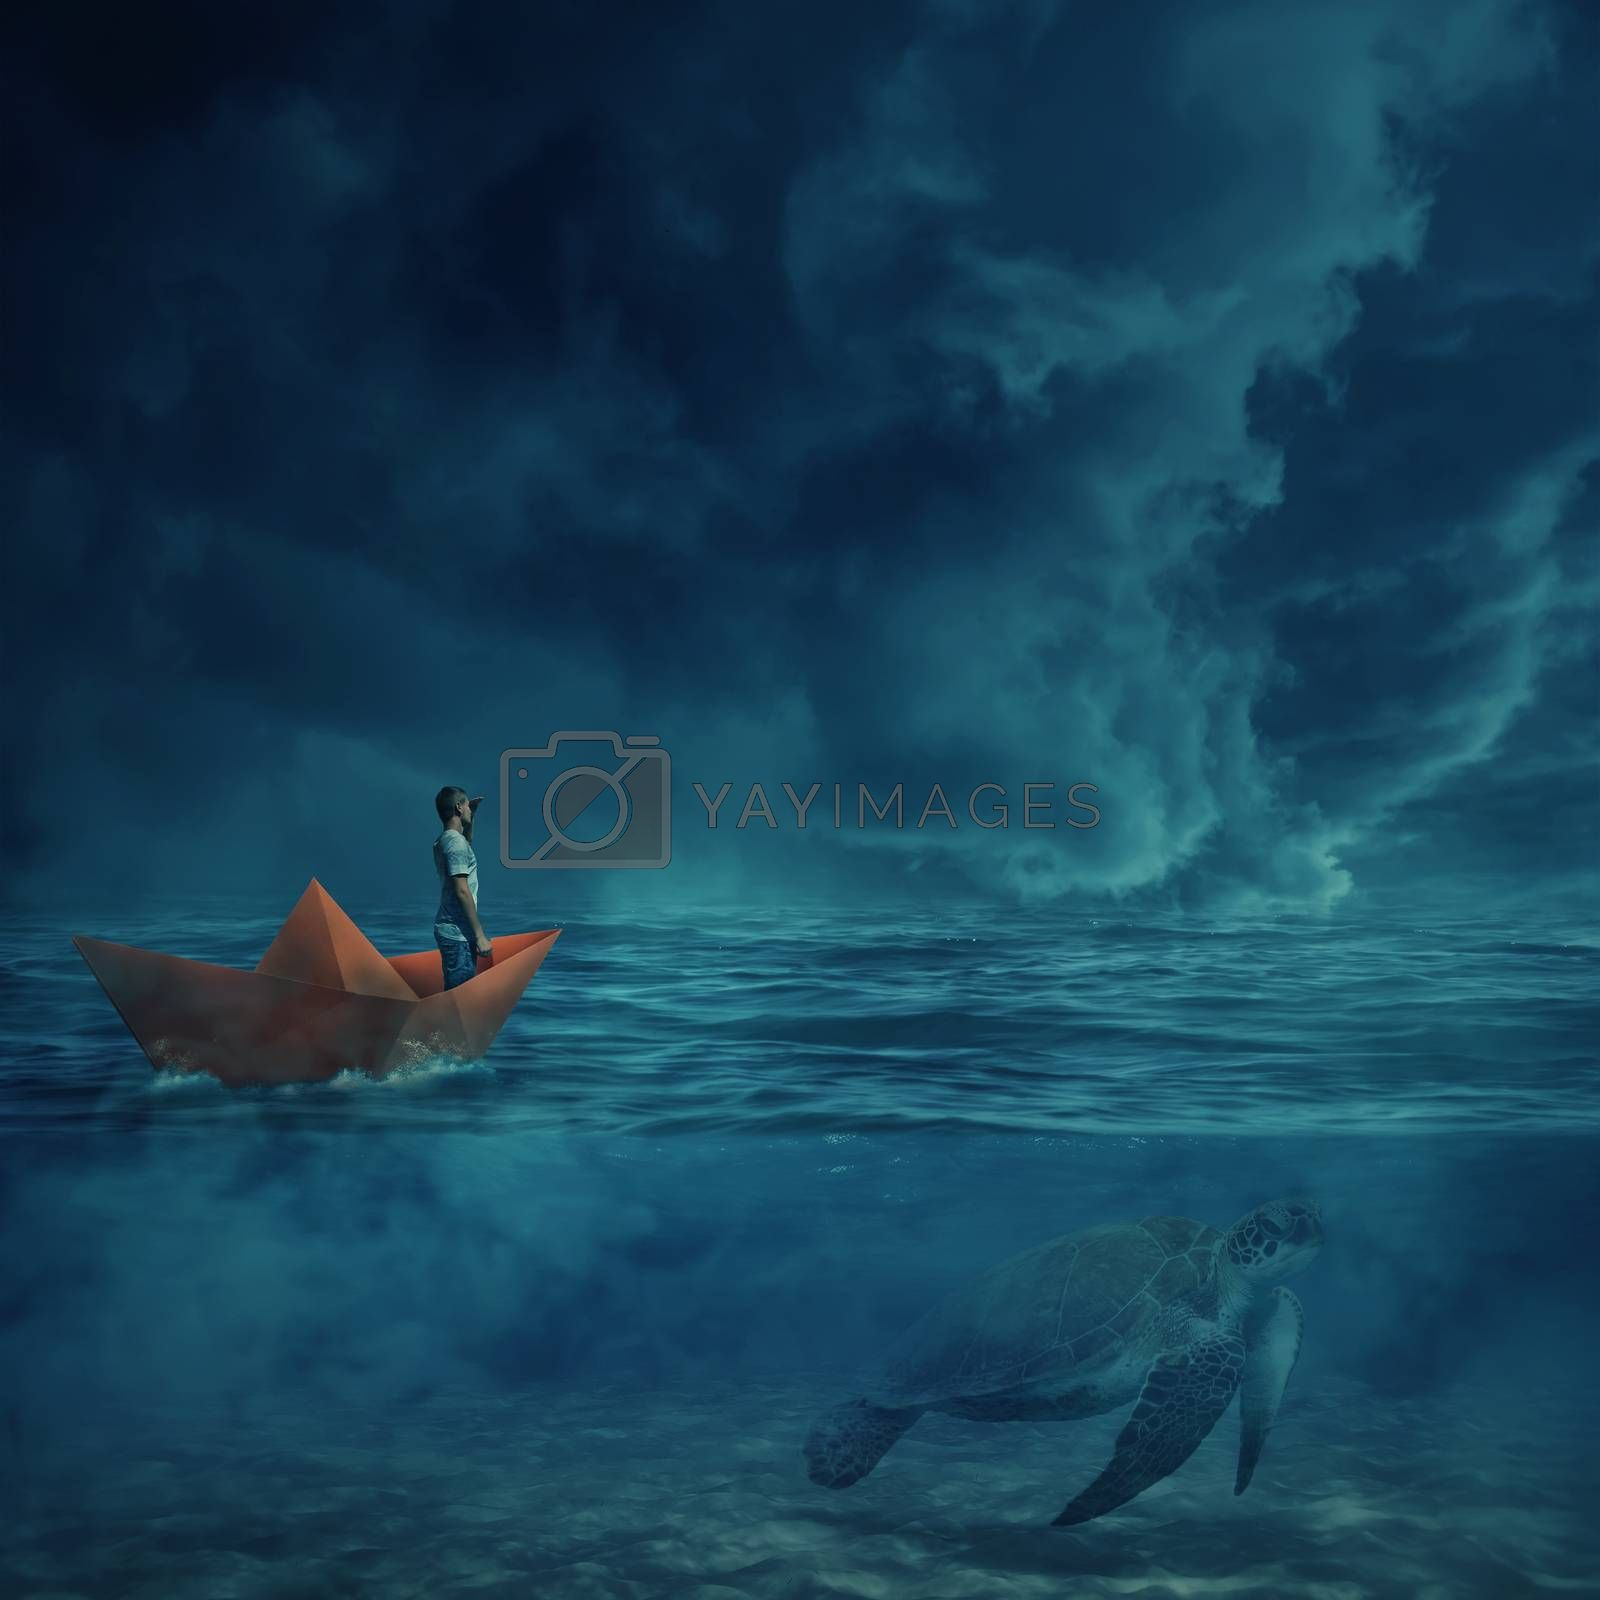 Young boy in a orange paper boat sail lost in the ocean, in a stormy night and a huge turtle underwater, as a guide, show him the way home. Adventure and journey concept.